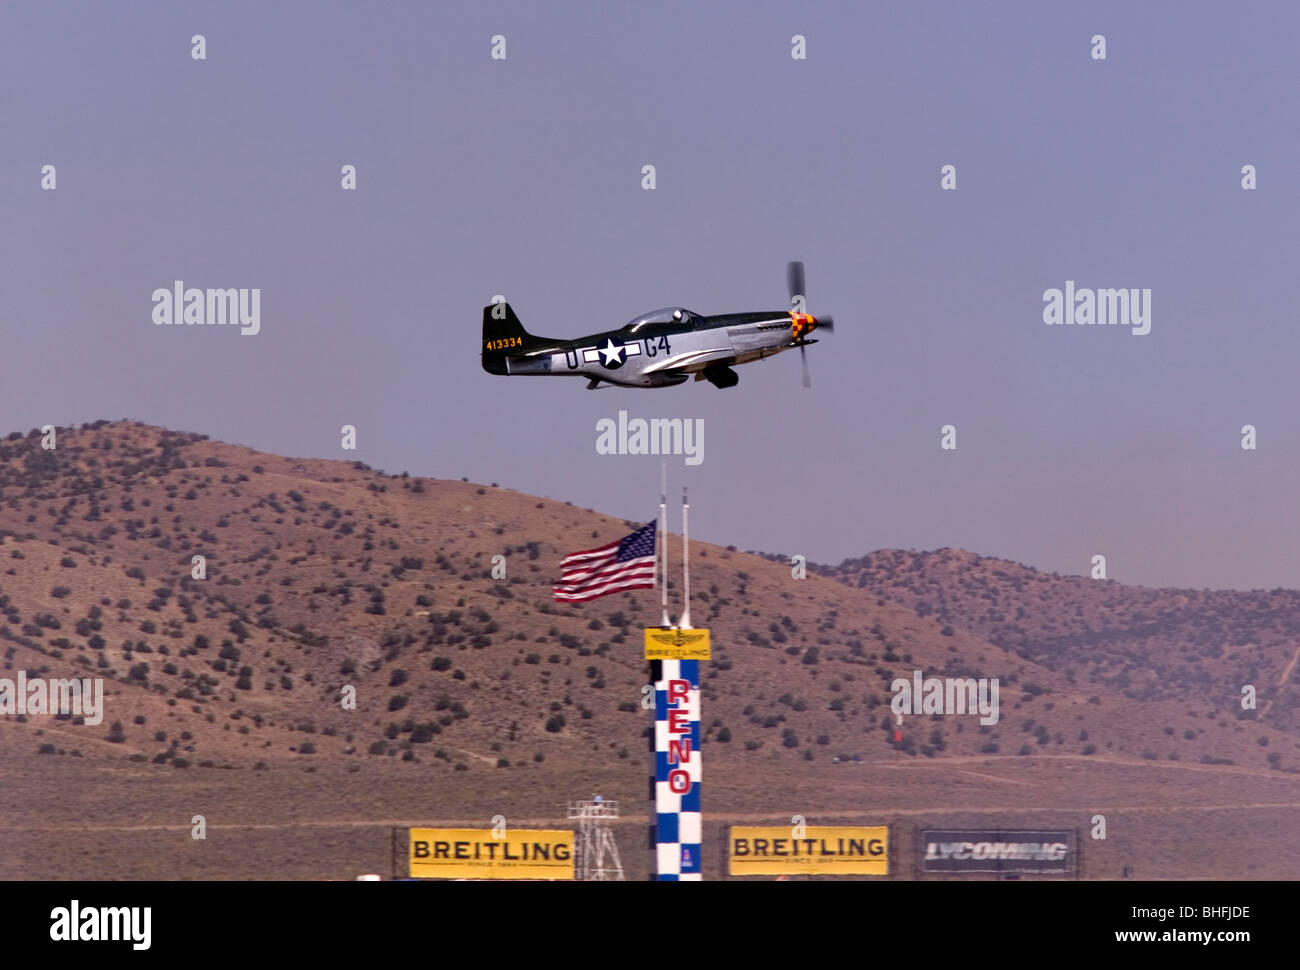 P51 Mustang in Unlimited Gold cup race. reno Air Races 2008 - Stock Image